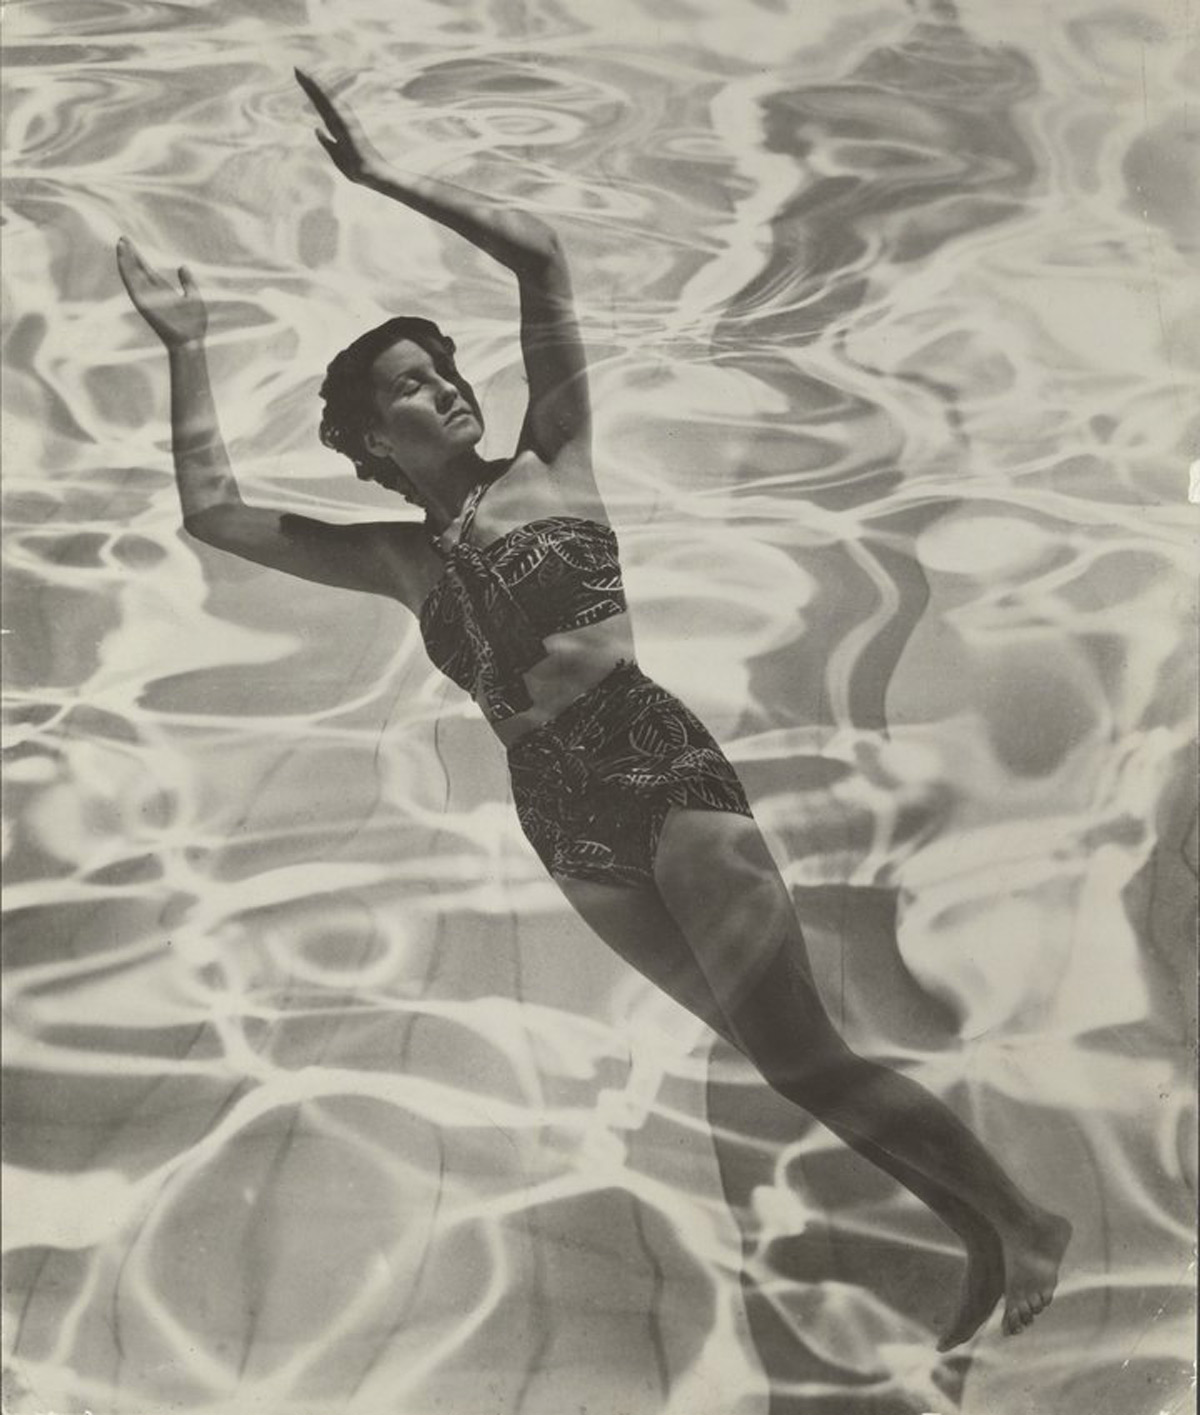 dora_maar_model_in_swimsuit_1936_the_j._paul_getty_museum_los_angeles_copyright_estate_of_dora_maar_slash_dacs_2019_all_rights_reserved